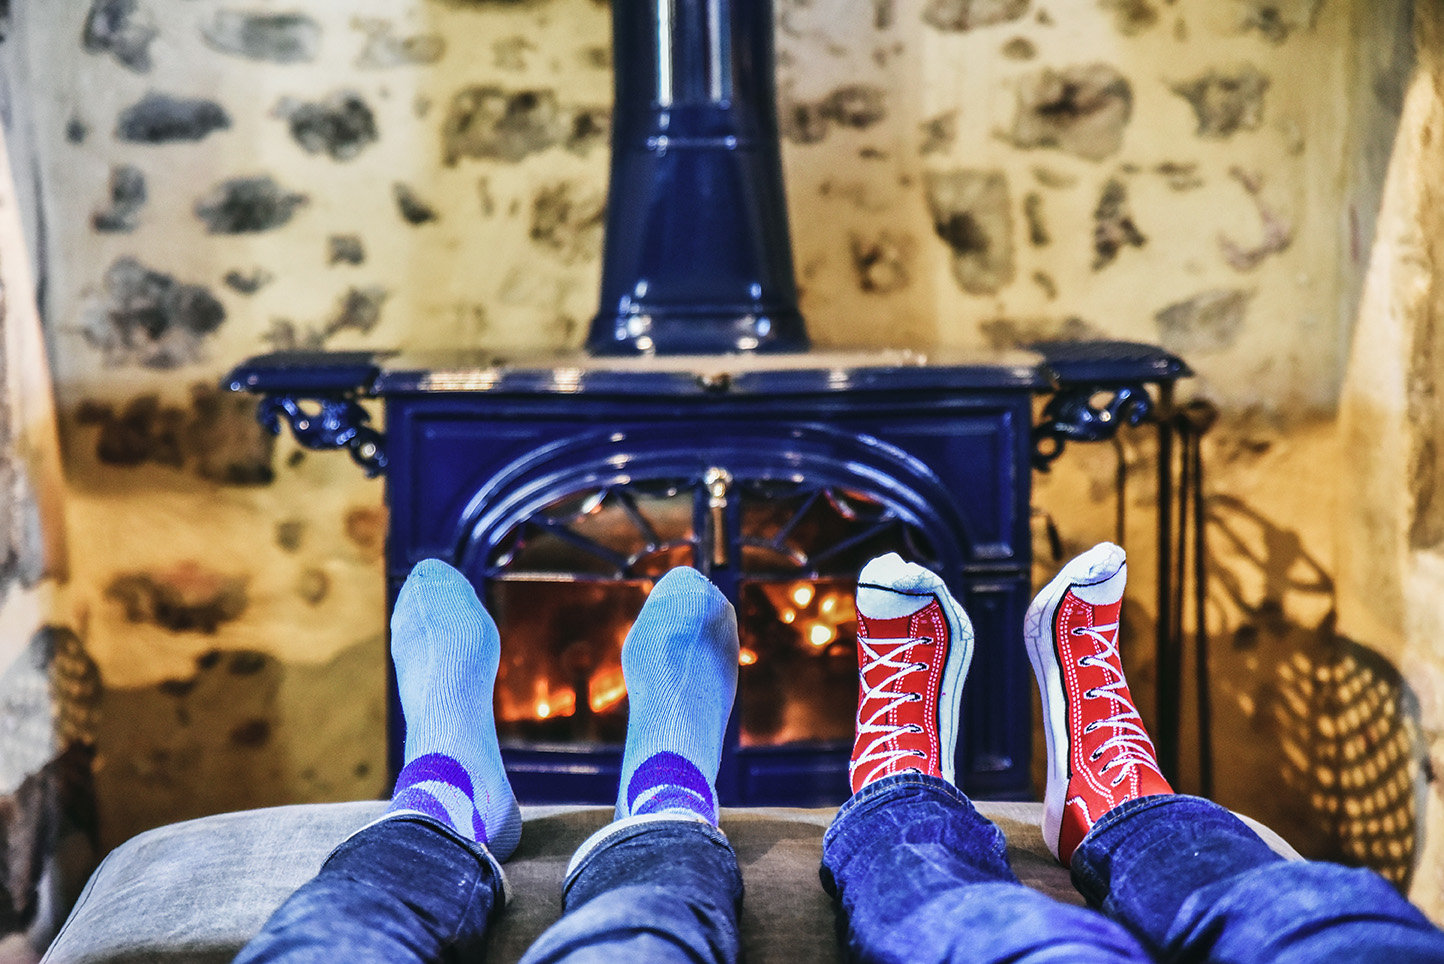 Warming your feet in front of a roaring fire in the sitting room of Le Mas, a spacious holiday home in the Dordogne